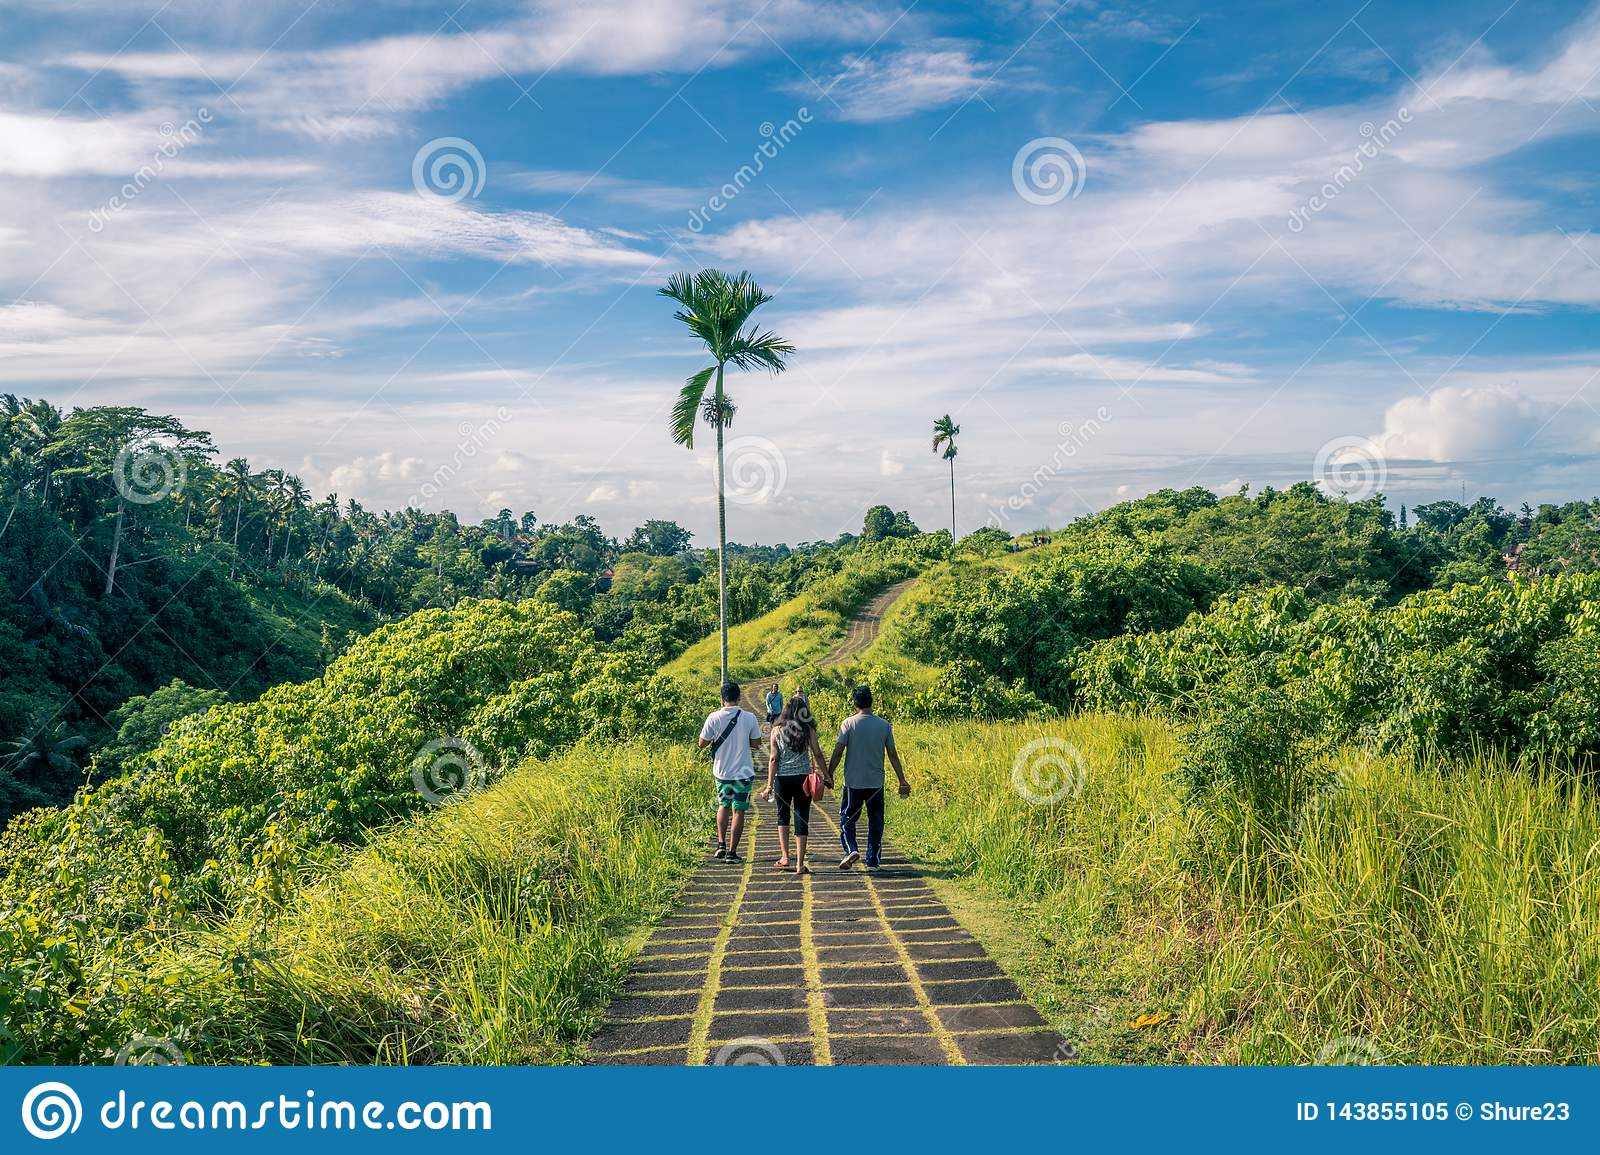 Tourist taking a guided tour of the ridge walk in Ubud